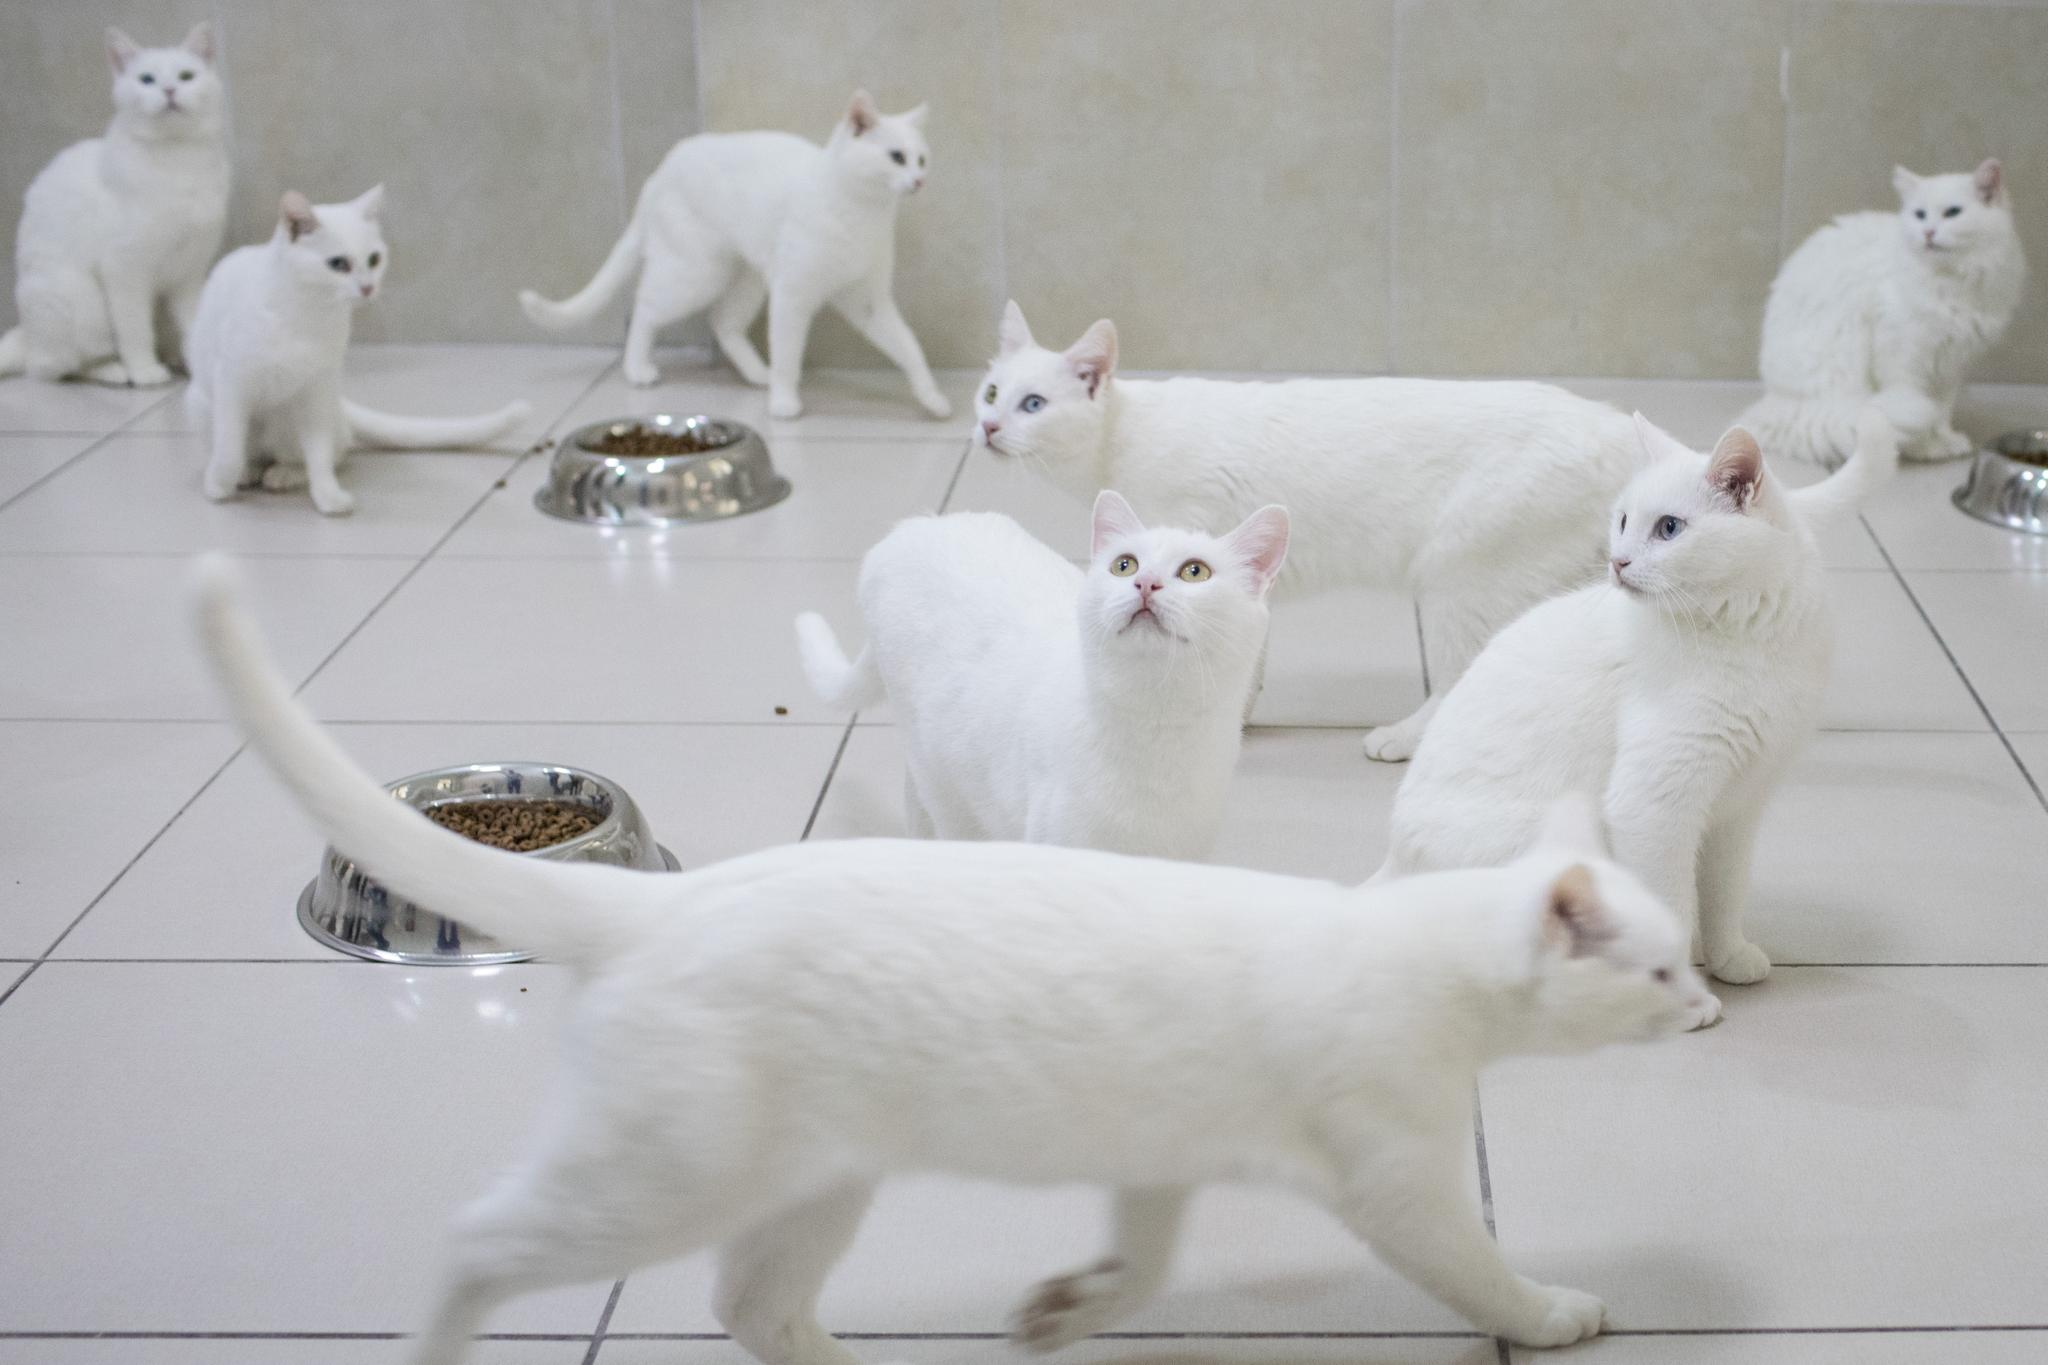 Turkish Van cats eat in their dining room at the Van Cat Research Center on February 8, 2018 in Van, Turkey. Cats aren't used as often to create mouse models of cancer research; these cats are part of a research project to protect their breed from dying out.